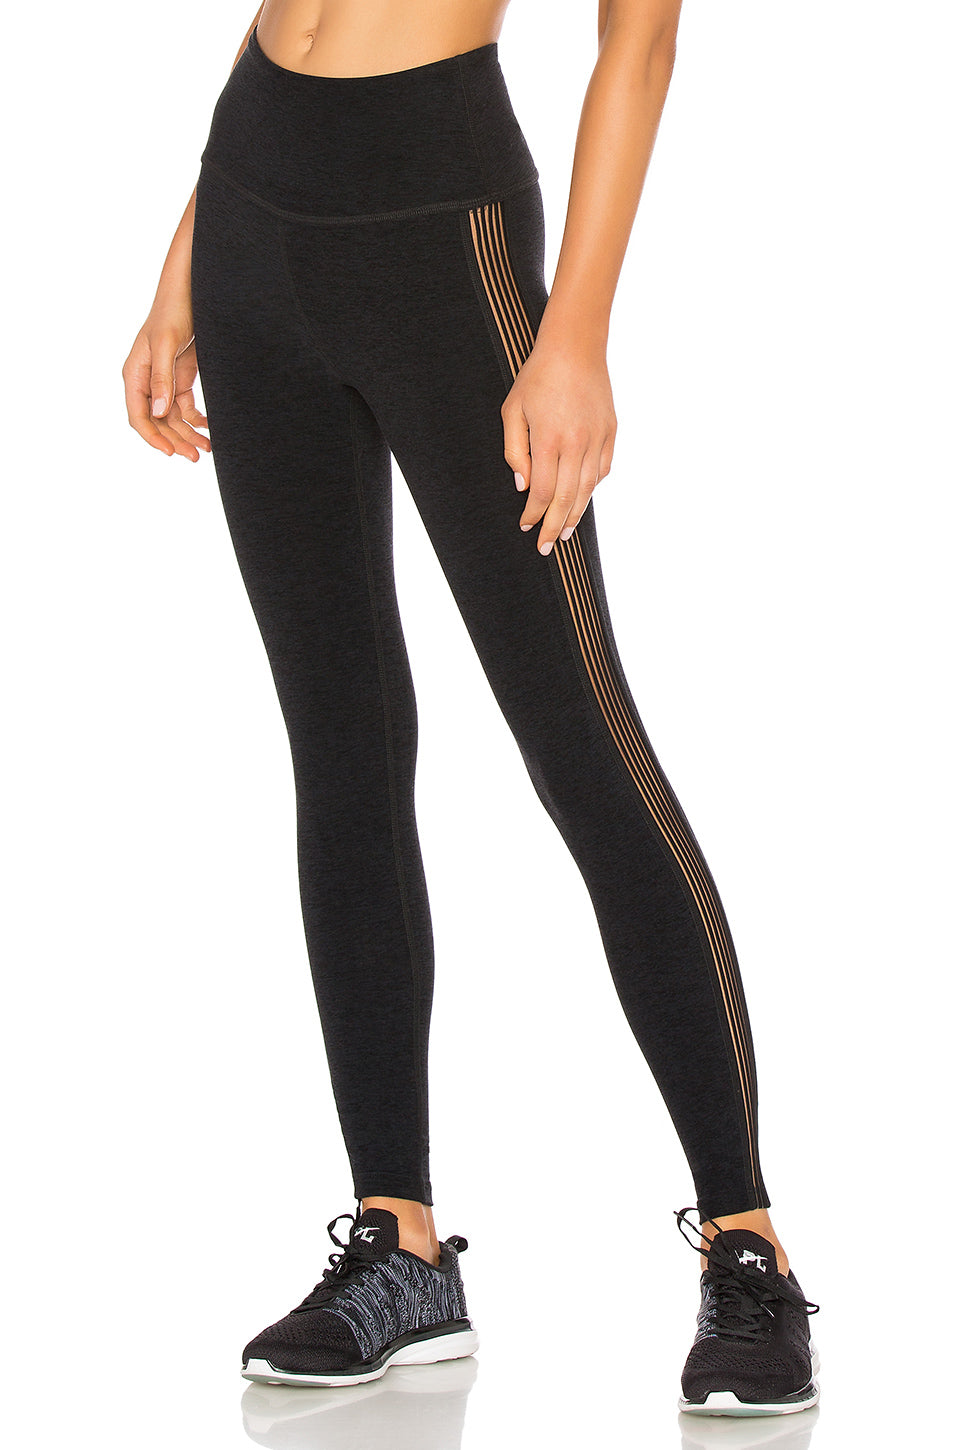 04f103c7fe Beyond Yoga Sheer Illusion High Waist Legging – Bliss Bandits